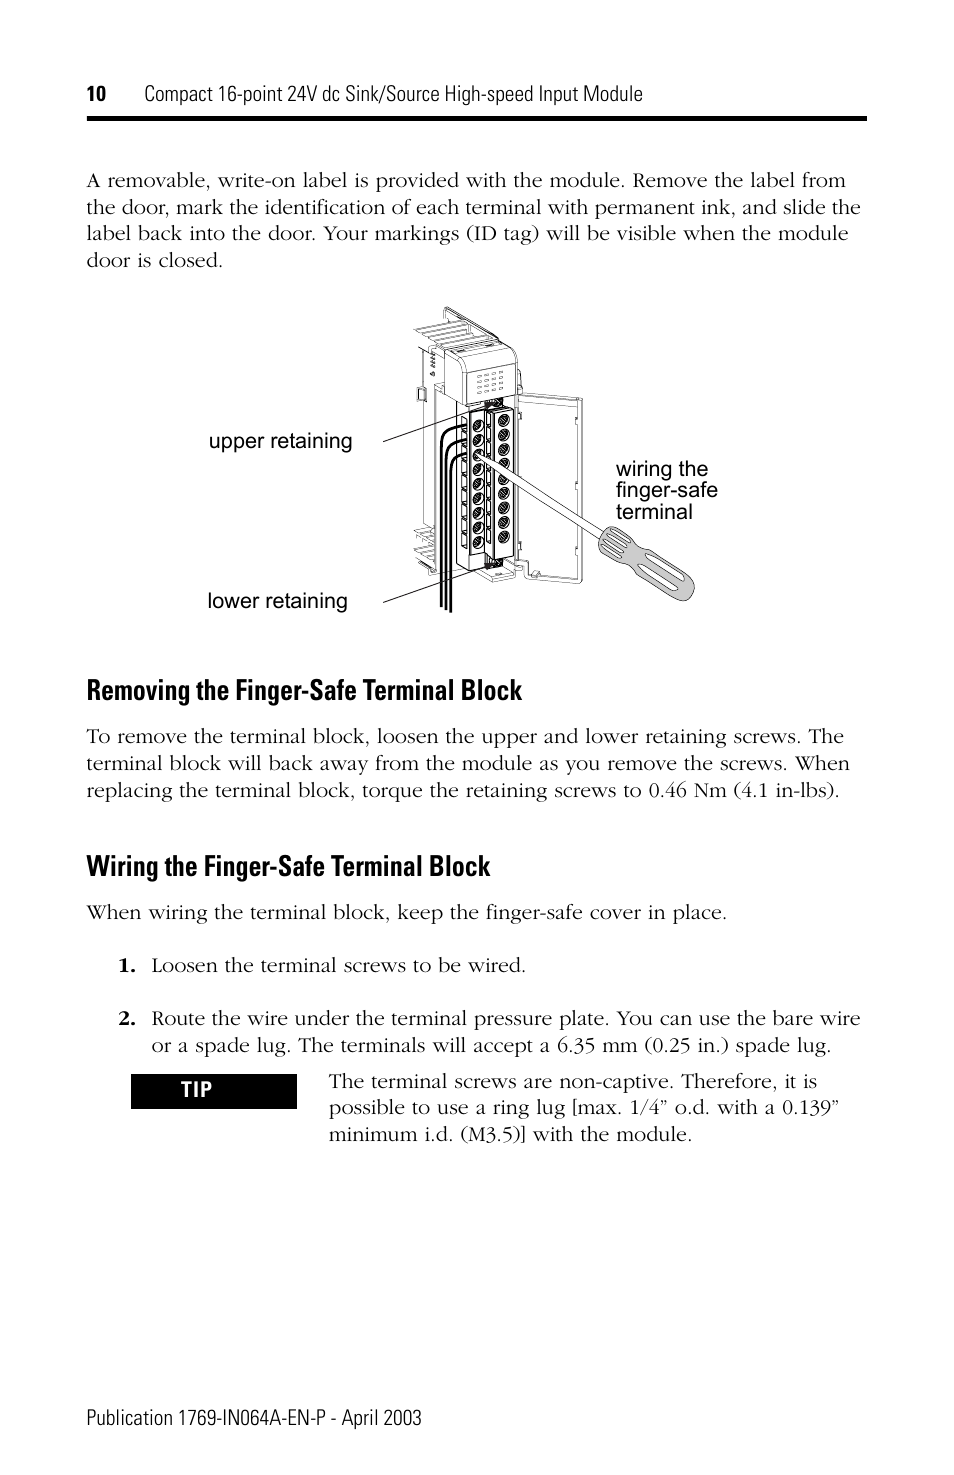 hight resolution of removing the finger safe terminal block wiring the finger safe terminal block rockwell automation 1769 iq16f compact 24v dc sink source input module user